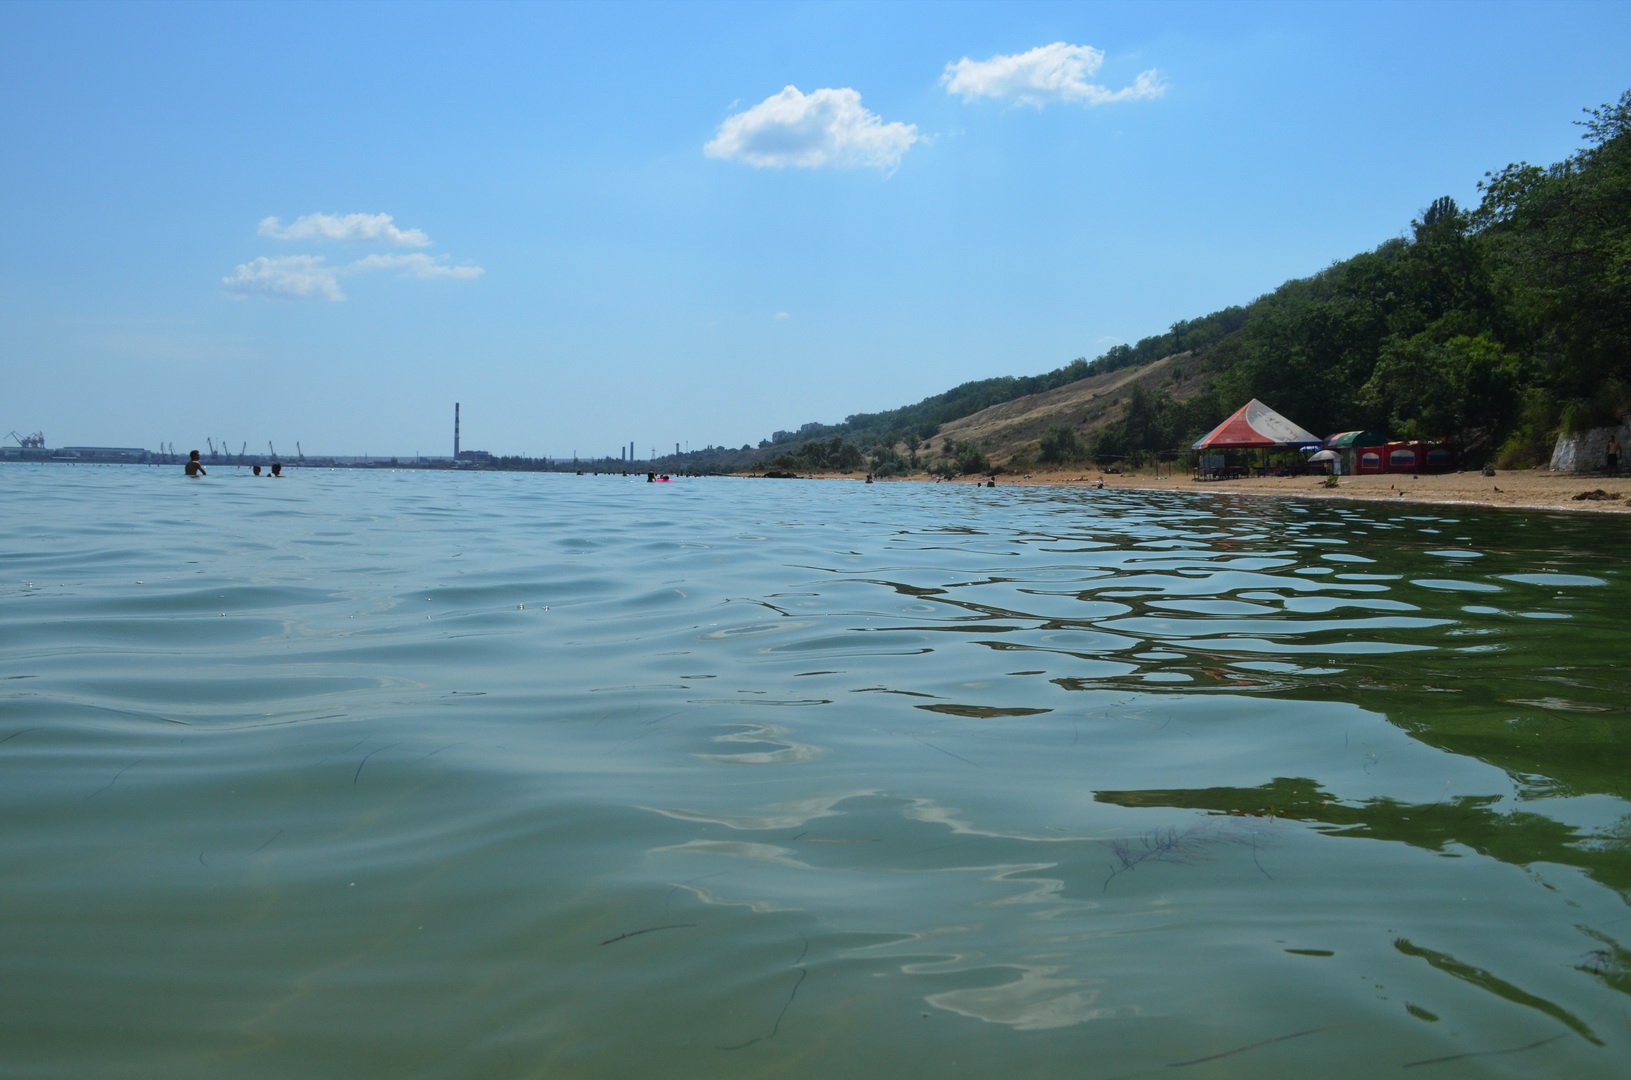 kerch beach 06 07 2020 5